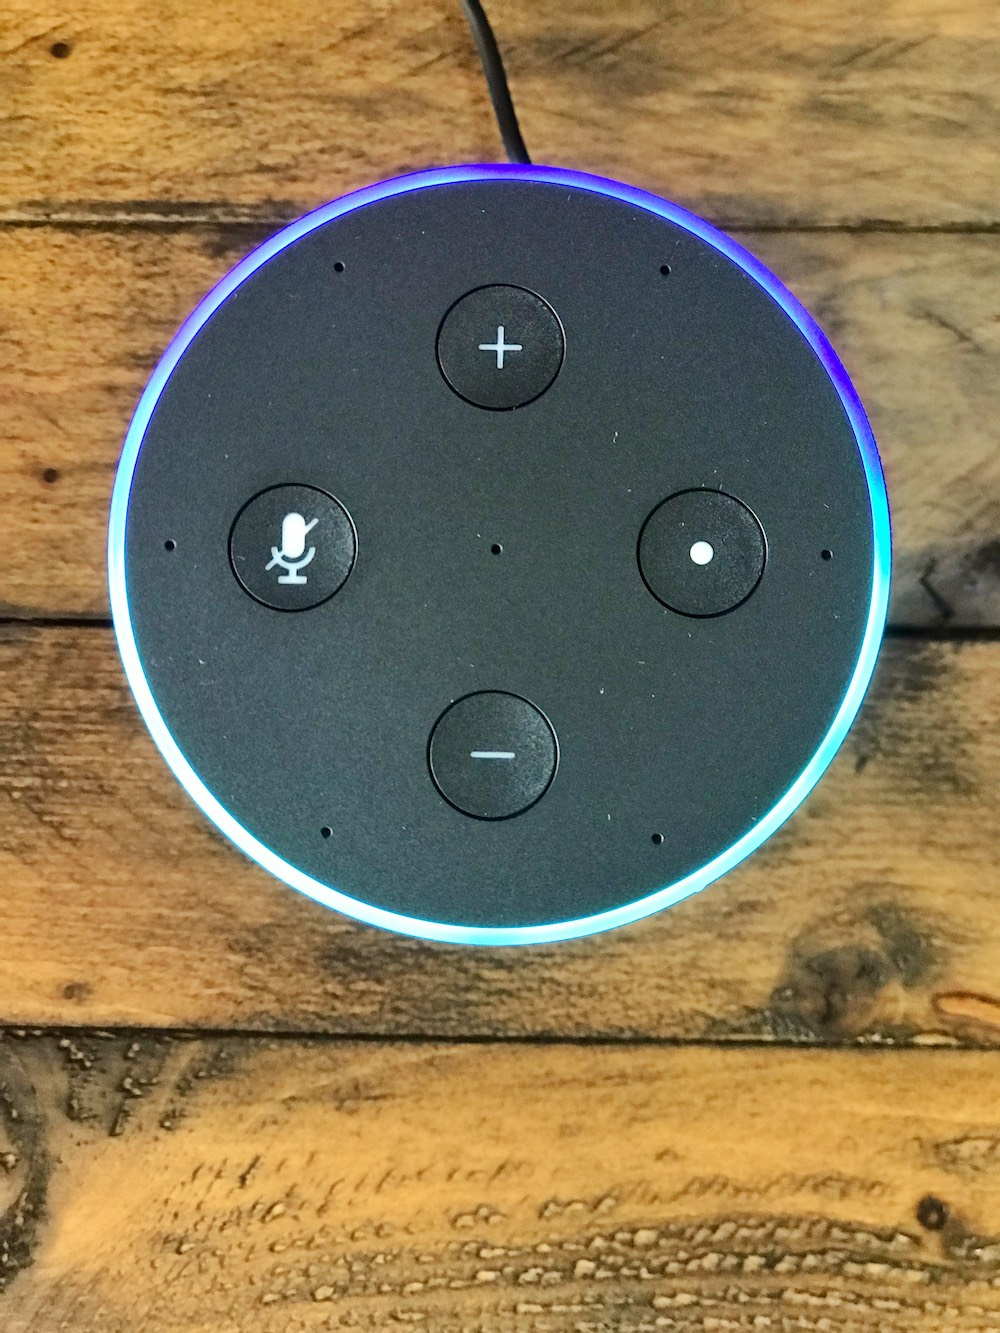 Amazon Echo top view